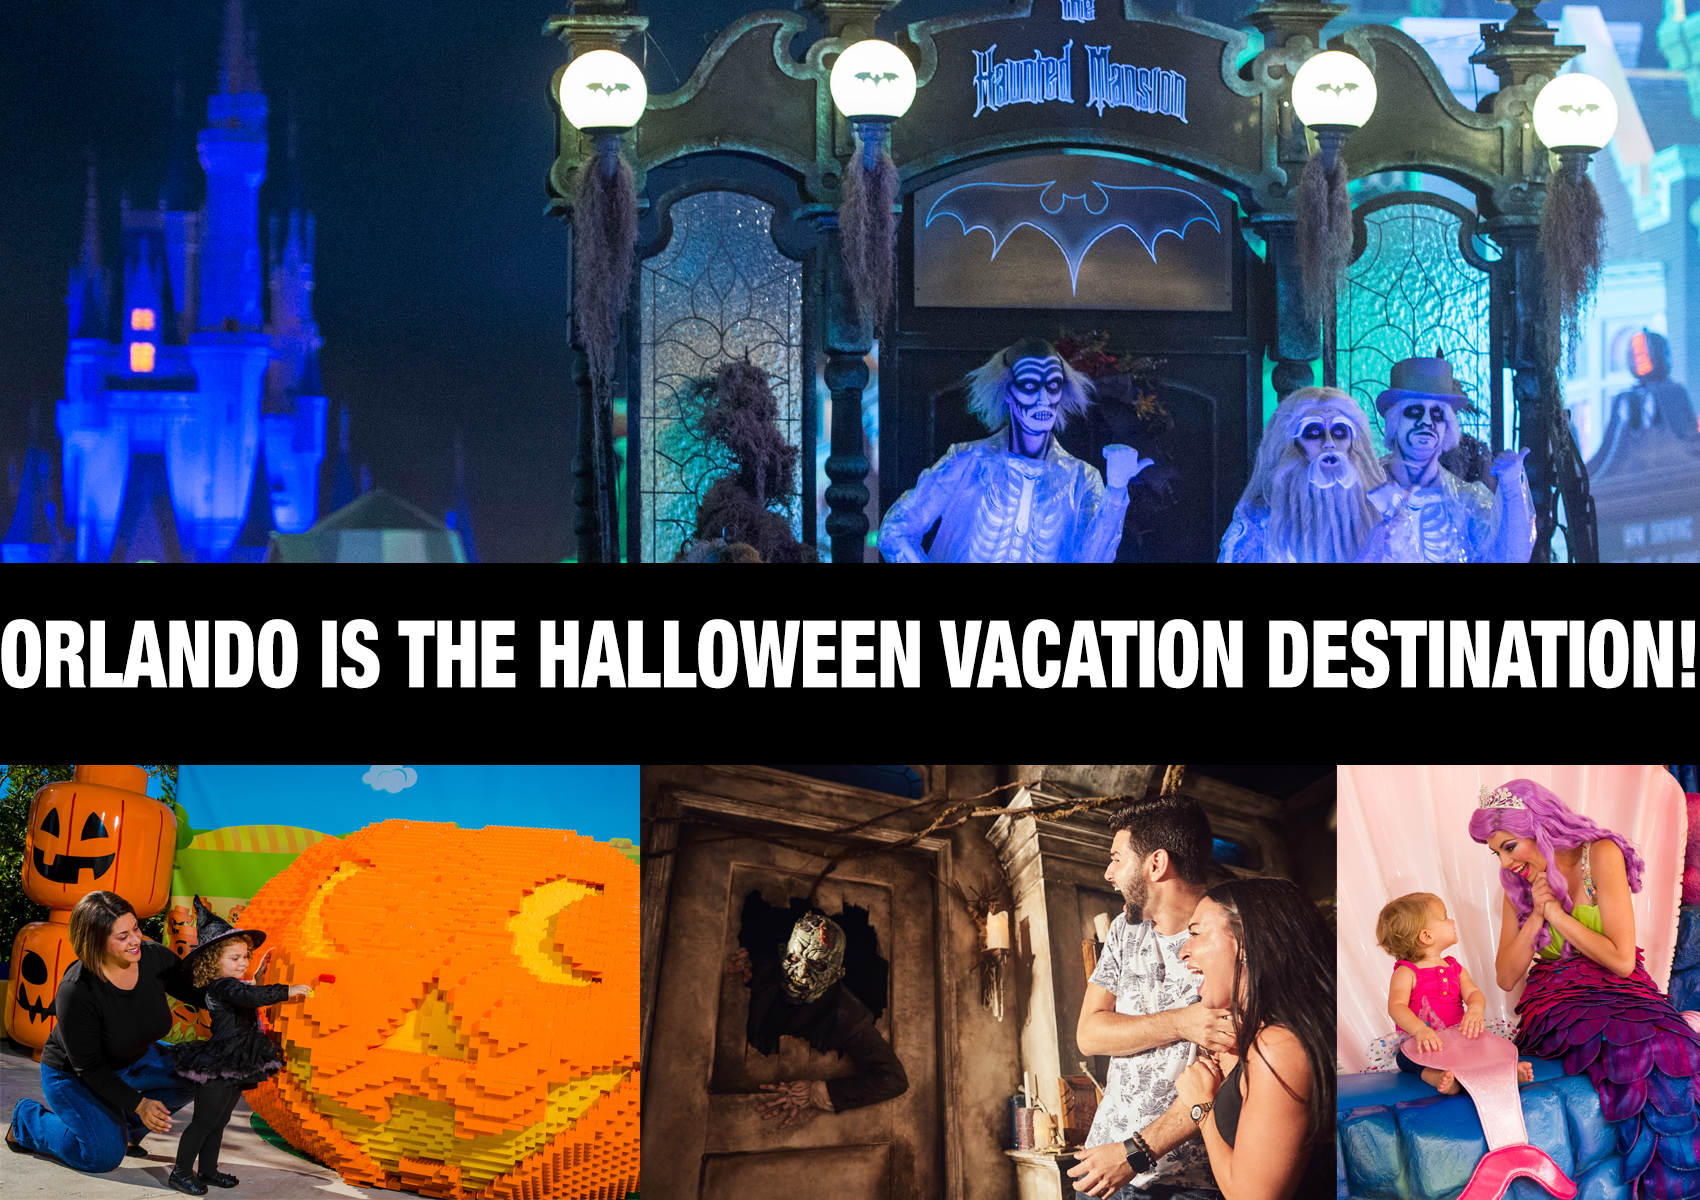 Orlando Moonlights as Halloween Vacation Capital with Disney, Universal, Spooky Empire and More!